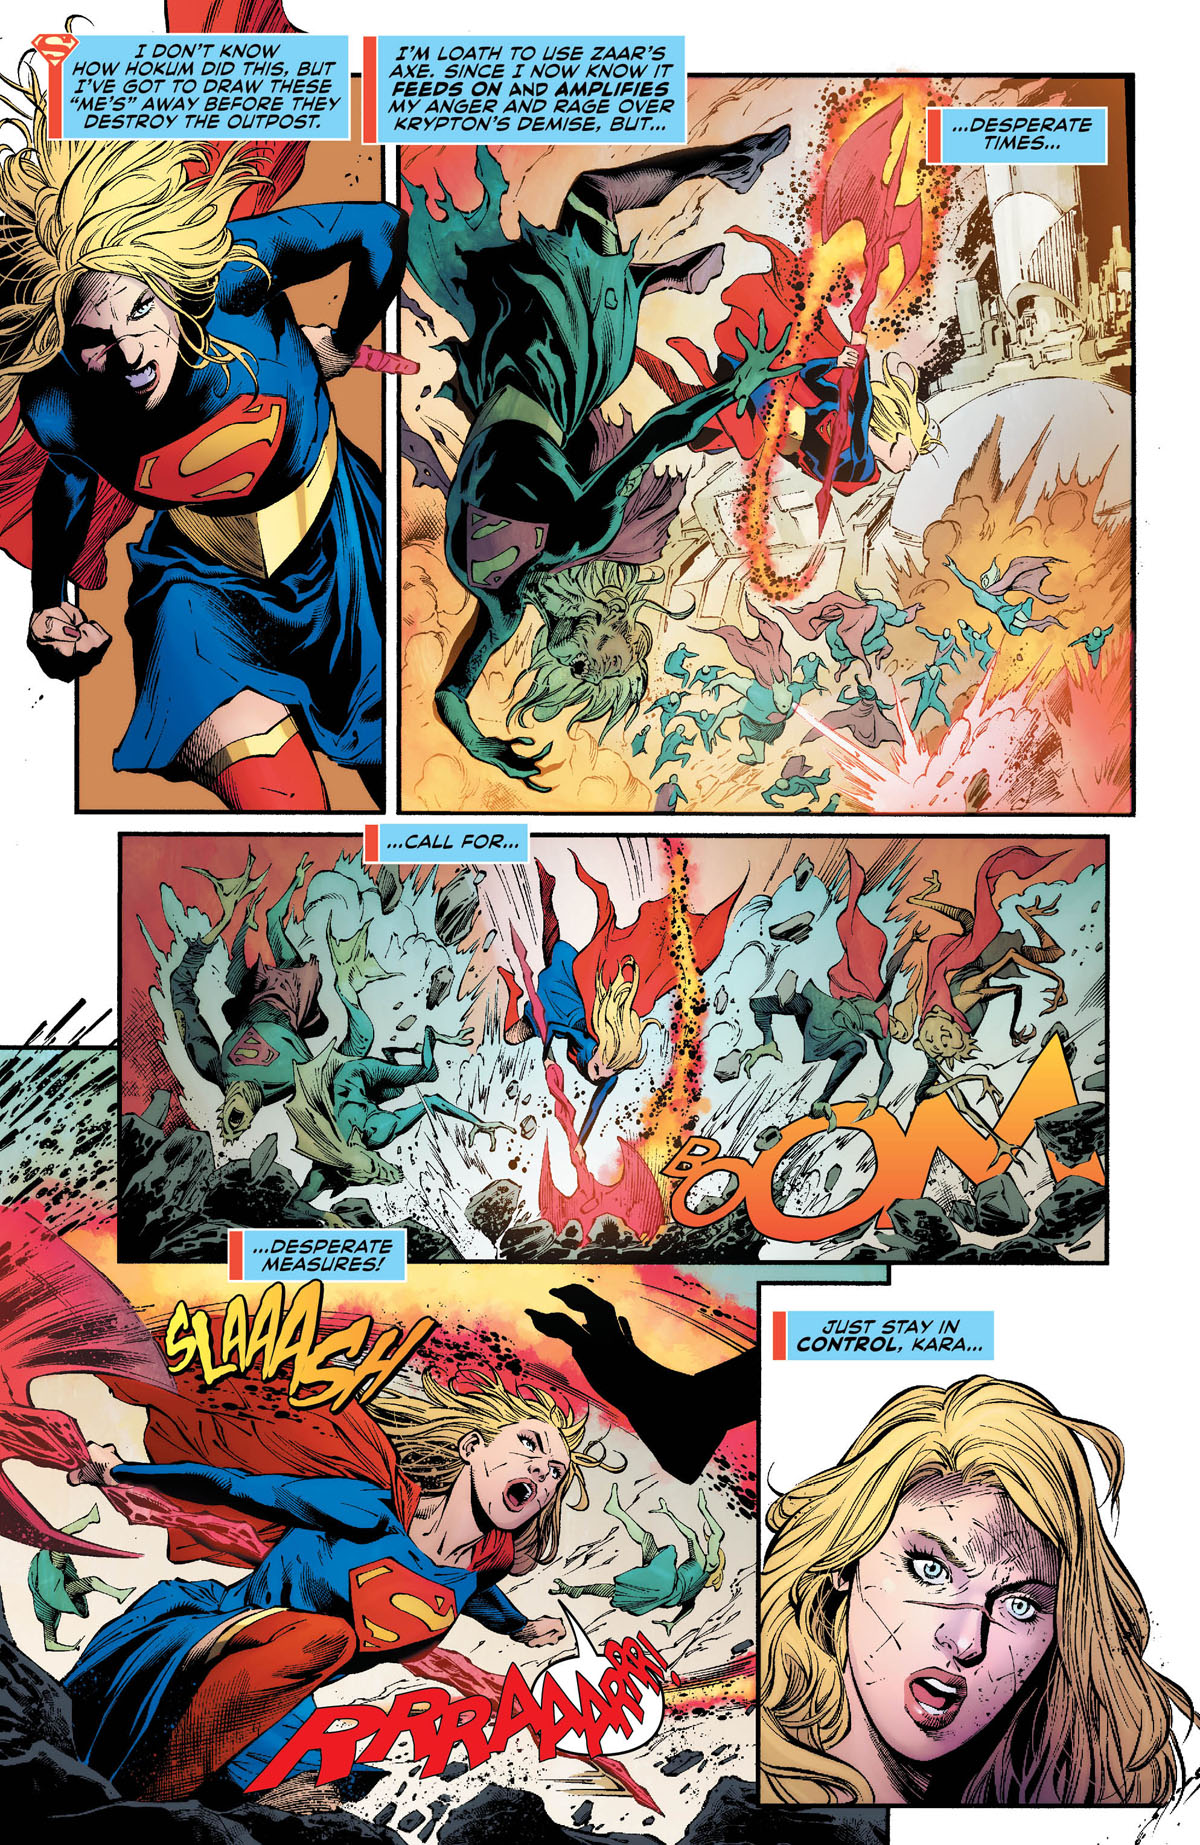 Supergirl #28 page 5